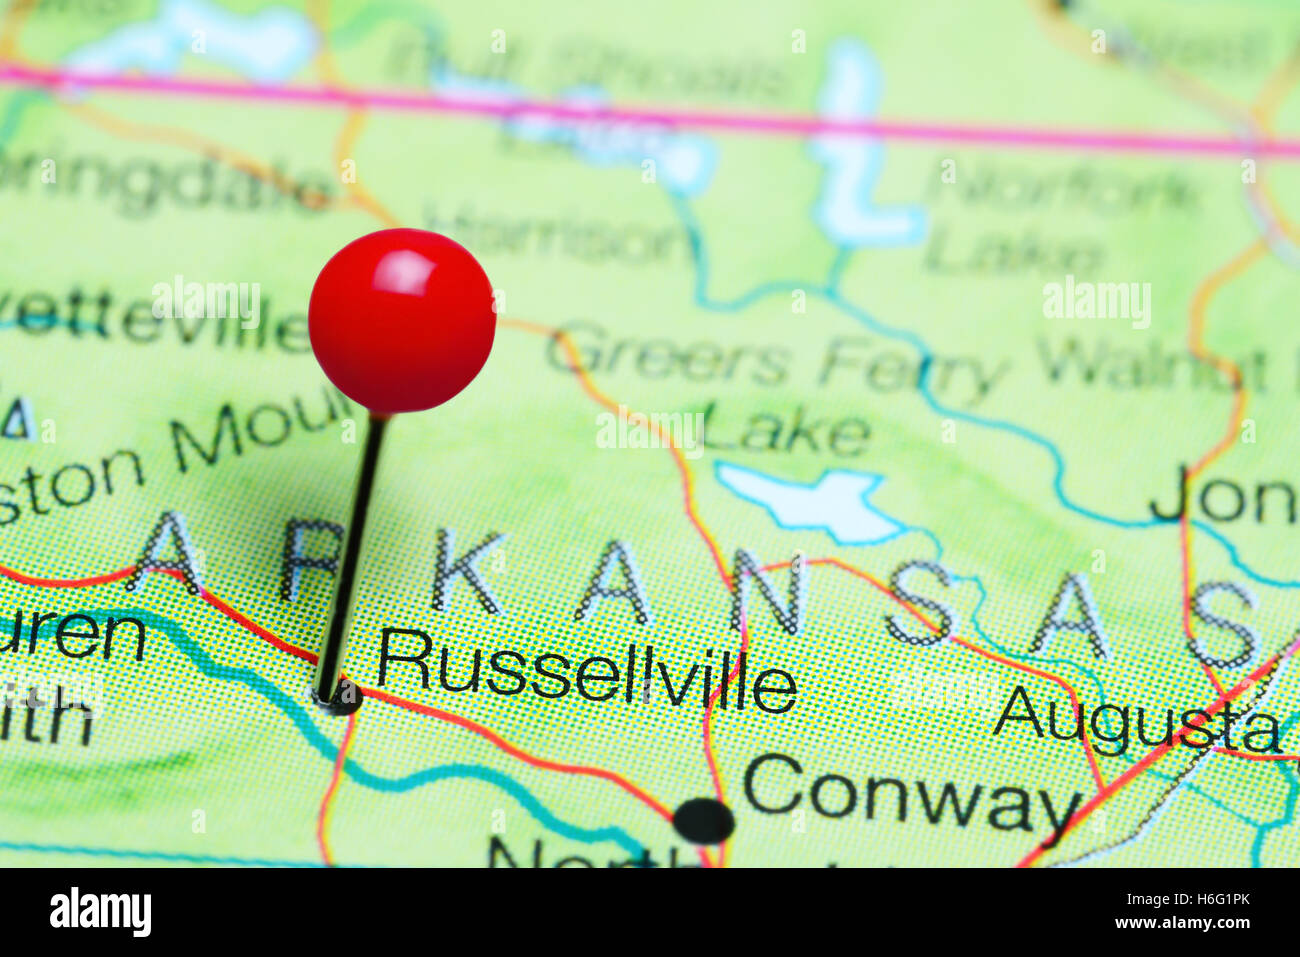 Russellville Arkansas Map.Russellville Pinned On A Map Of Arkansas Usa Stock Photo 124513163